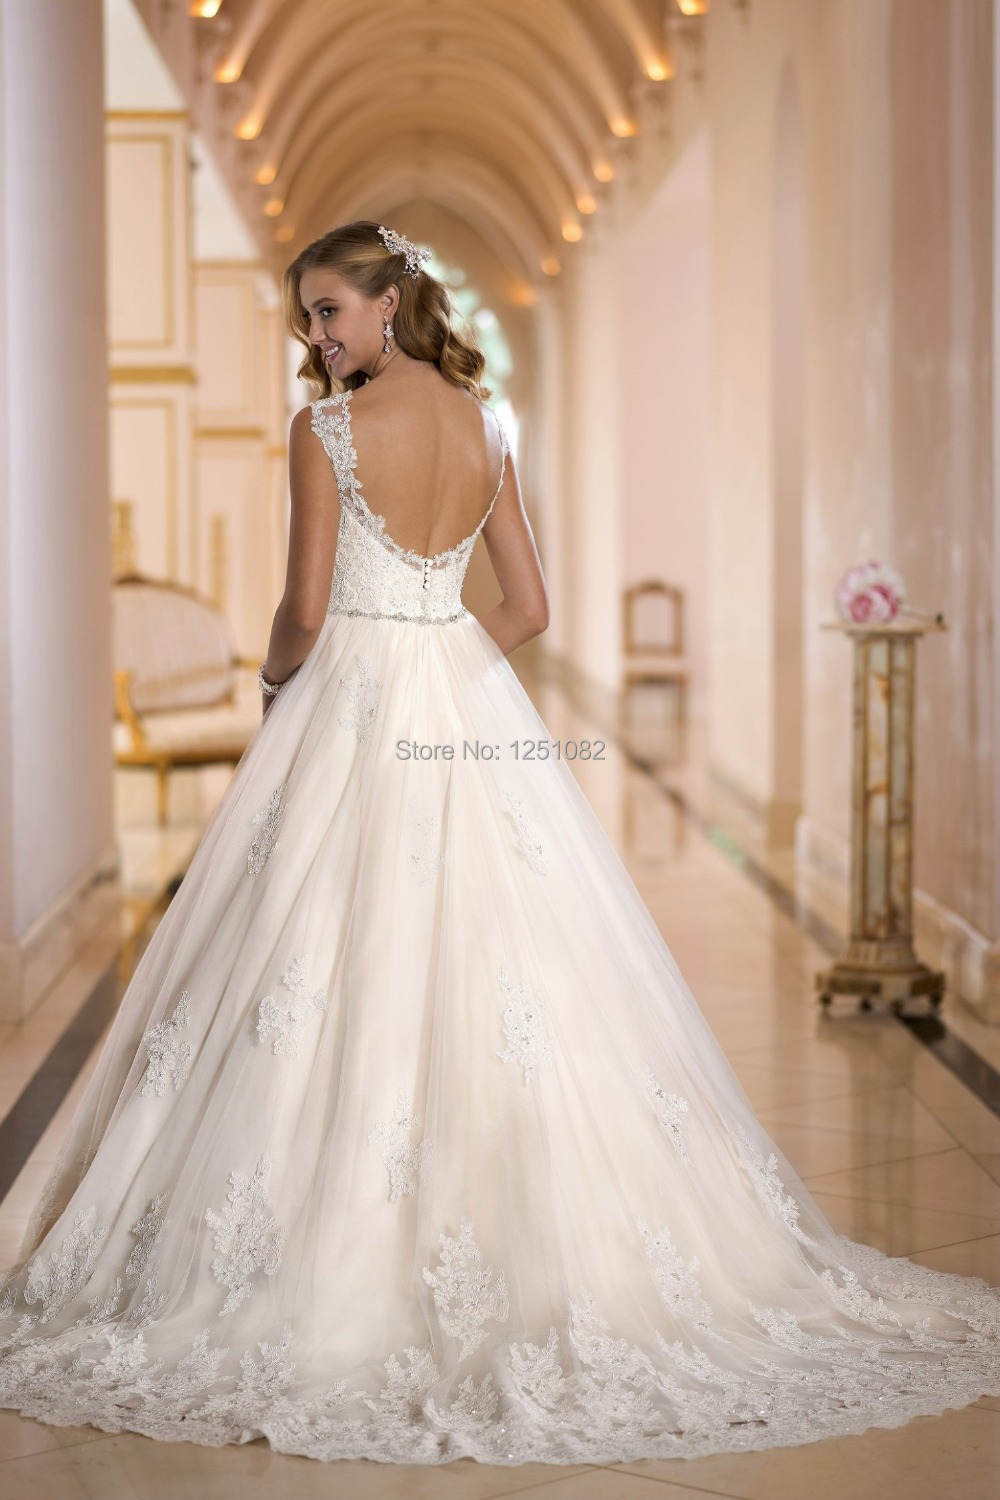 ... -Appliques-Tulle-Sexy-Open-Back-Ball-Gown-Wedding-Dresses-2015.jpg Open Back Ball Gown Wedding Dresses